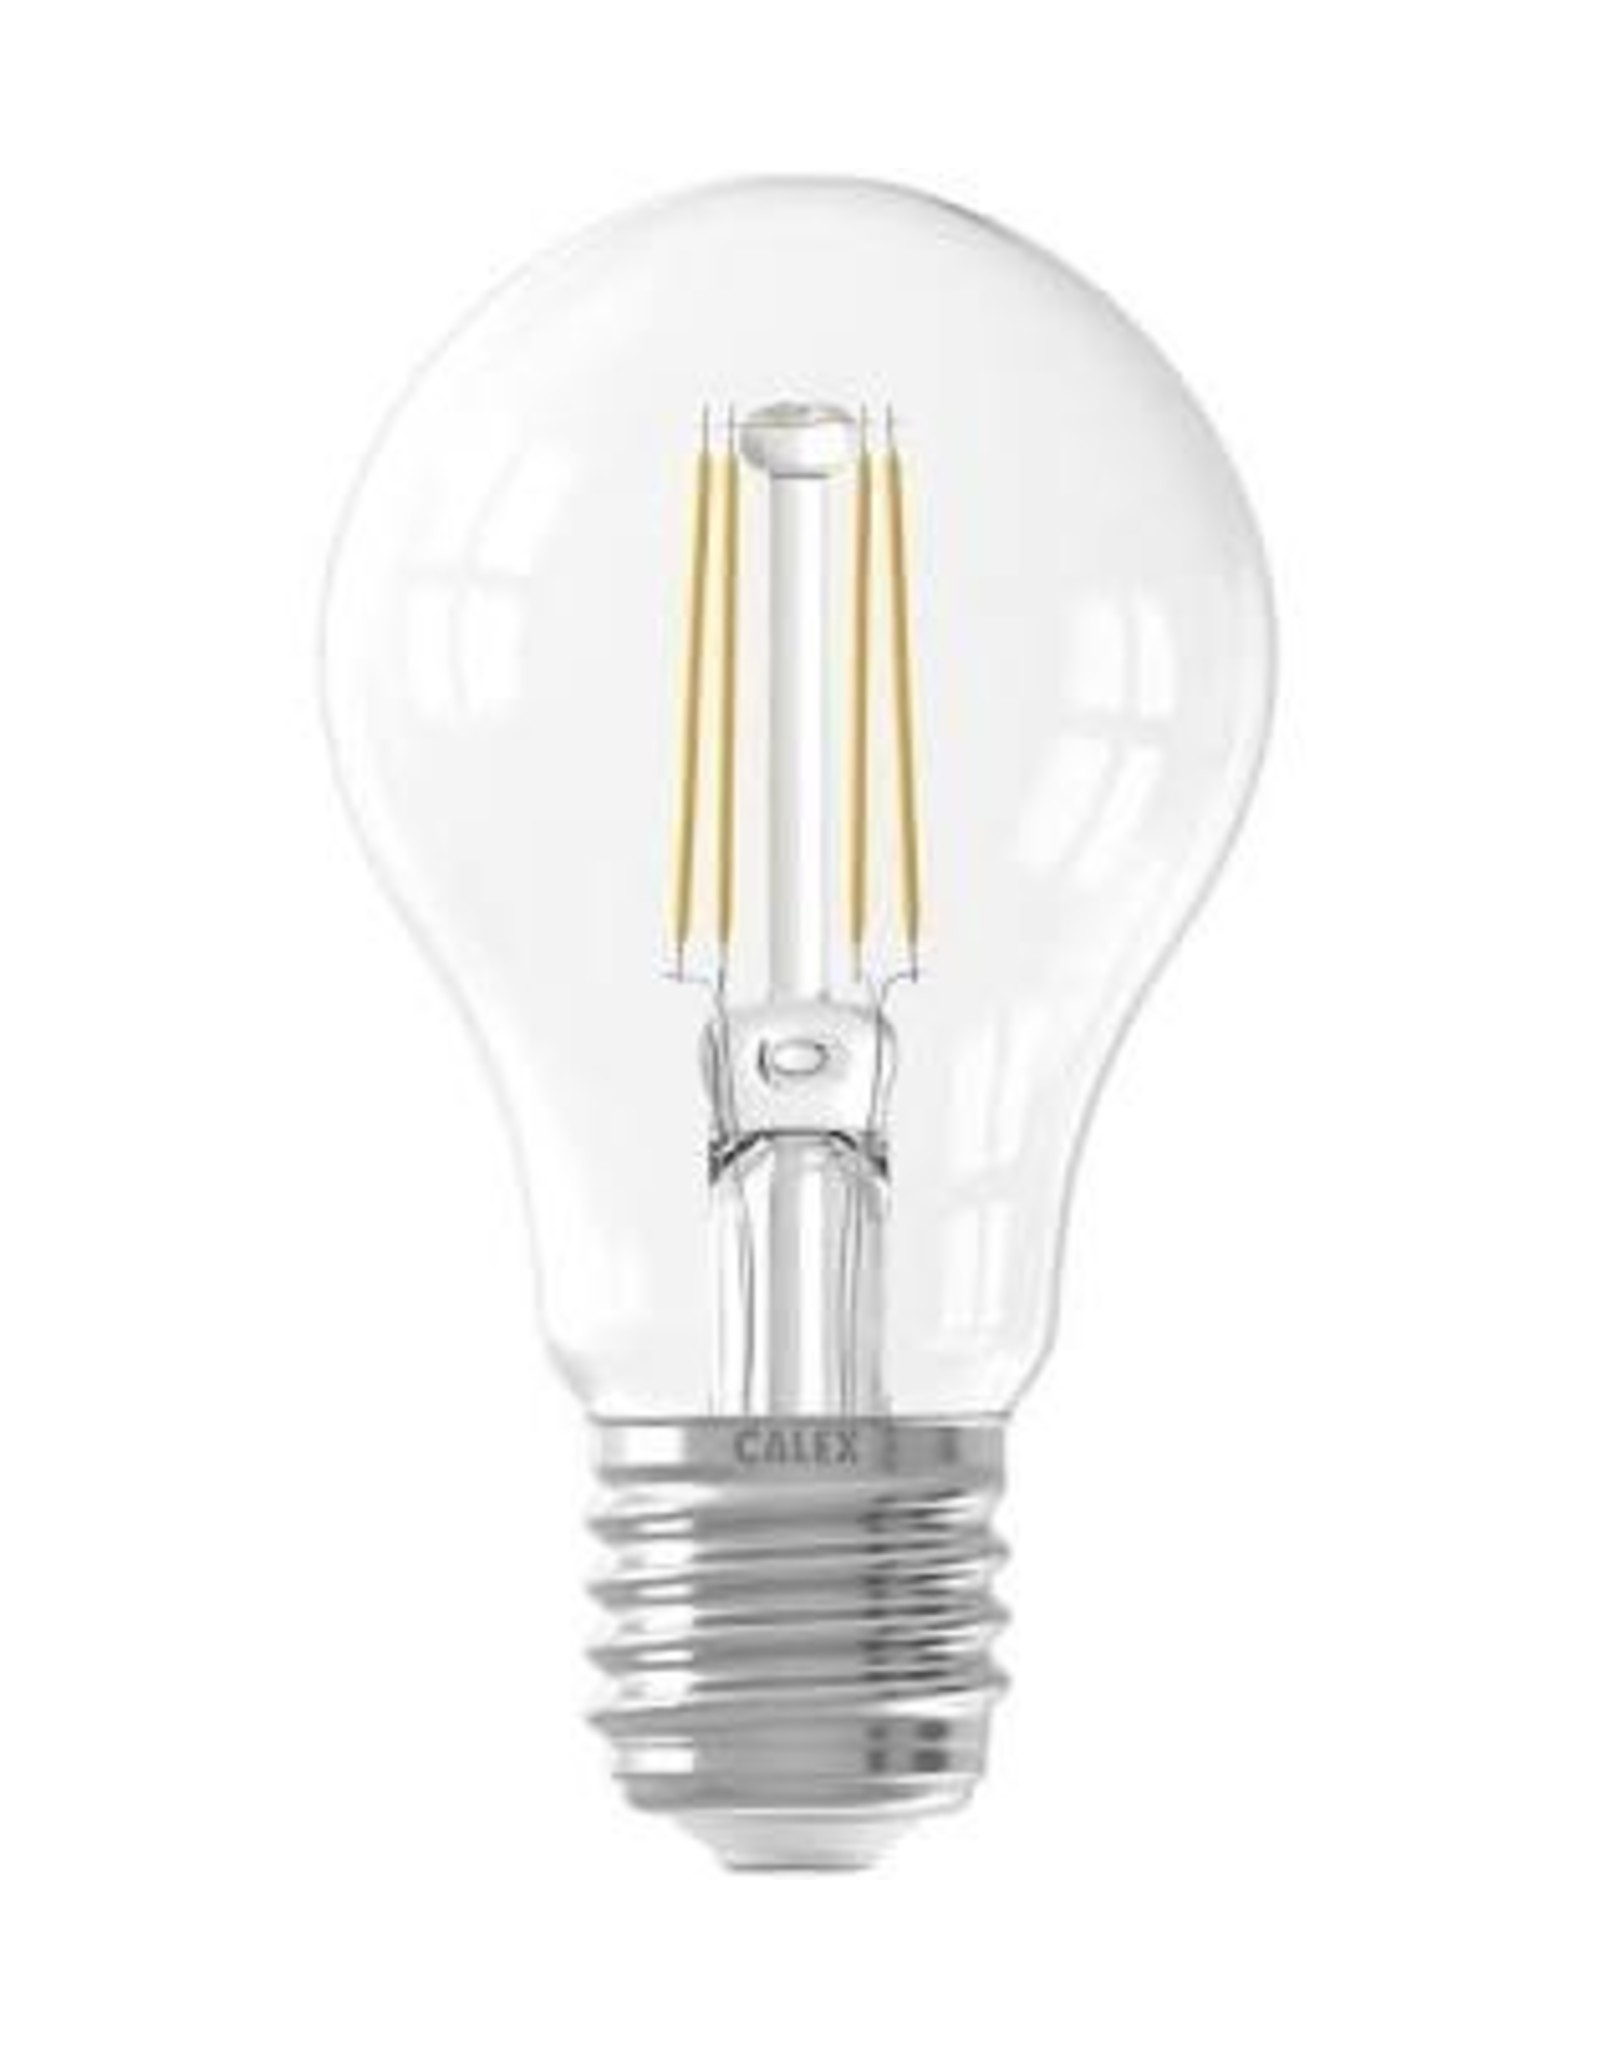 Calex LED Full Glass Filament GLS-lamp 220-240V 4W 390lm E27 A60, Clear 2700K CRI80 Dimmable, energy label A++